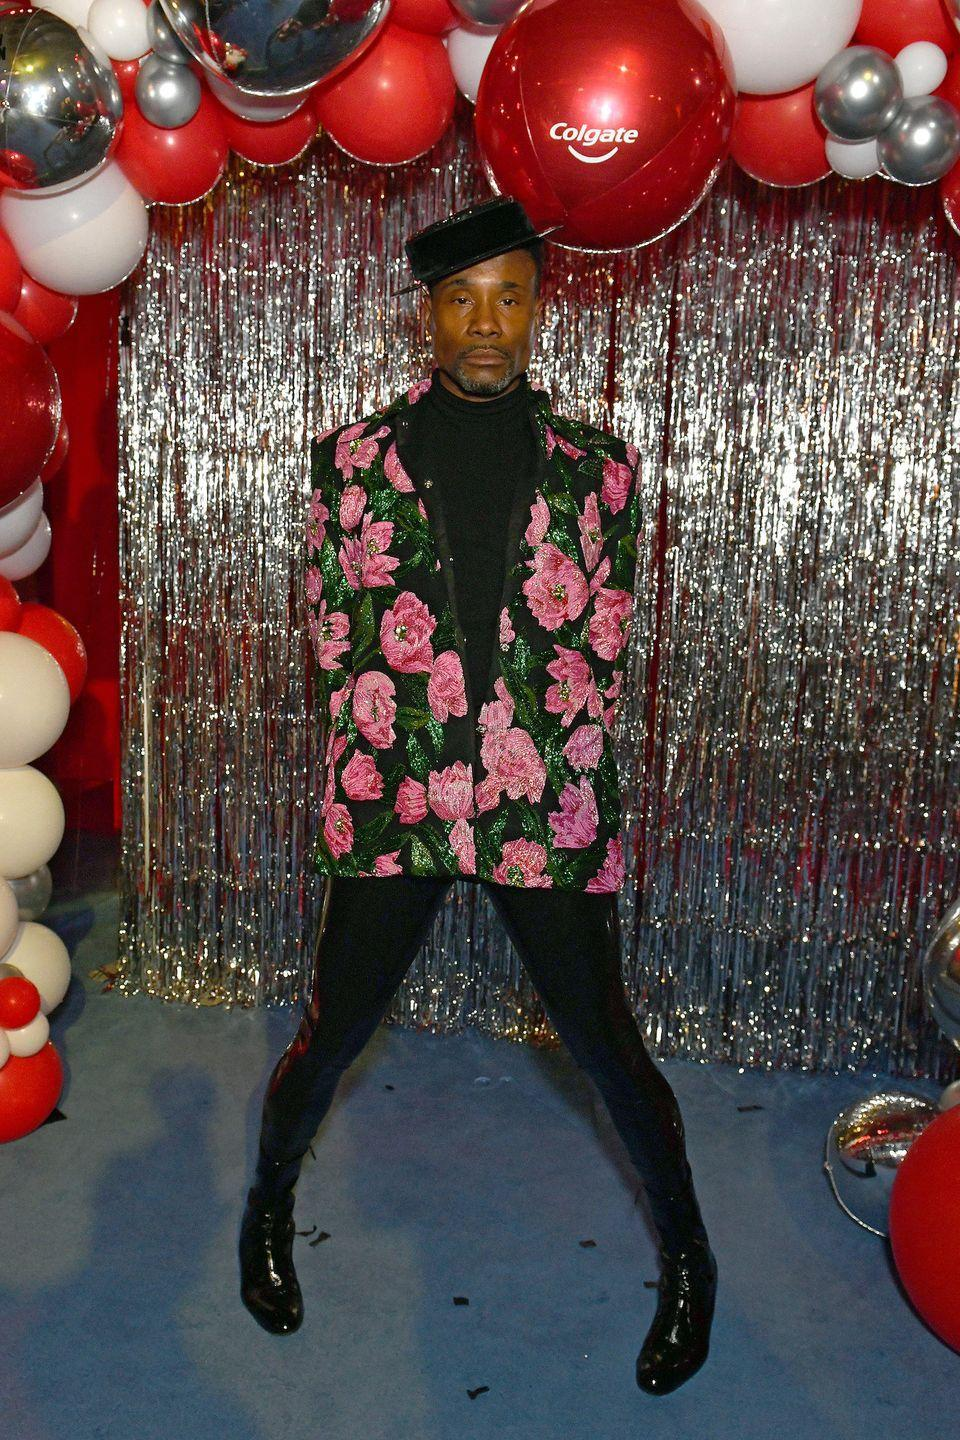 <p>Porter wore a Richard Quinn-inspired floral look to the Richard Quinn show on day three of London Fashion Week. The star was later seen at the Colgate #Poutfree x Richard Quinn after party wearing a pink and green floral-printed blazer with a black hat, sunglasses and black shiny trousers. </p>